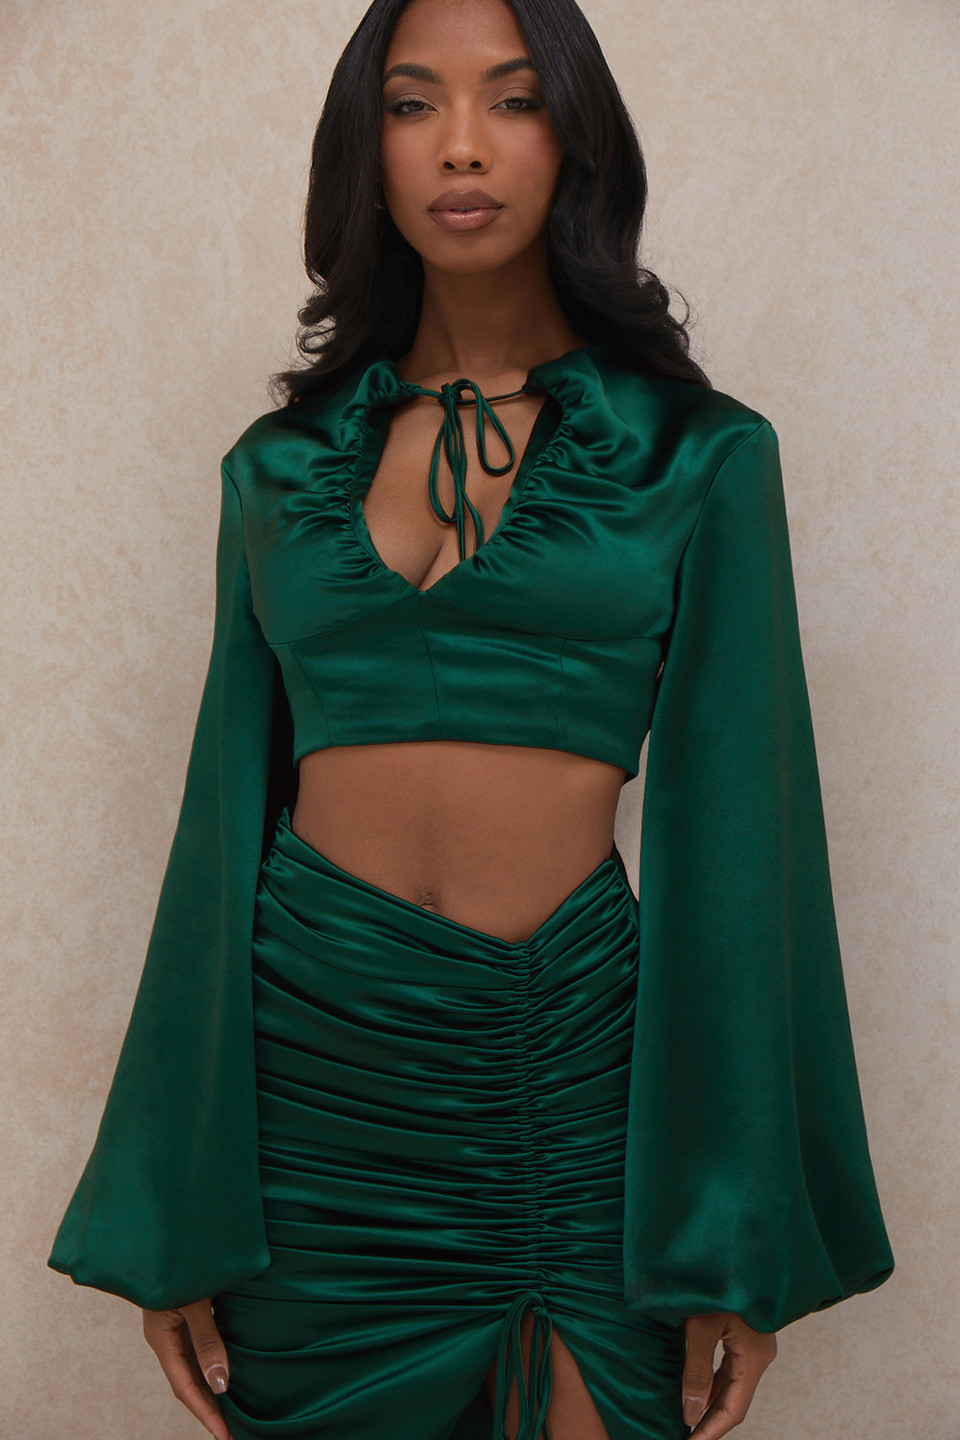 Vandra Emerald Green Satin Balloon Sleeve Top